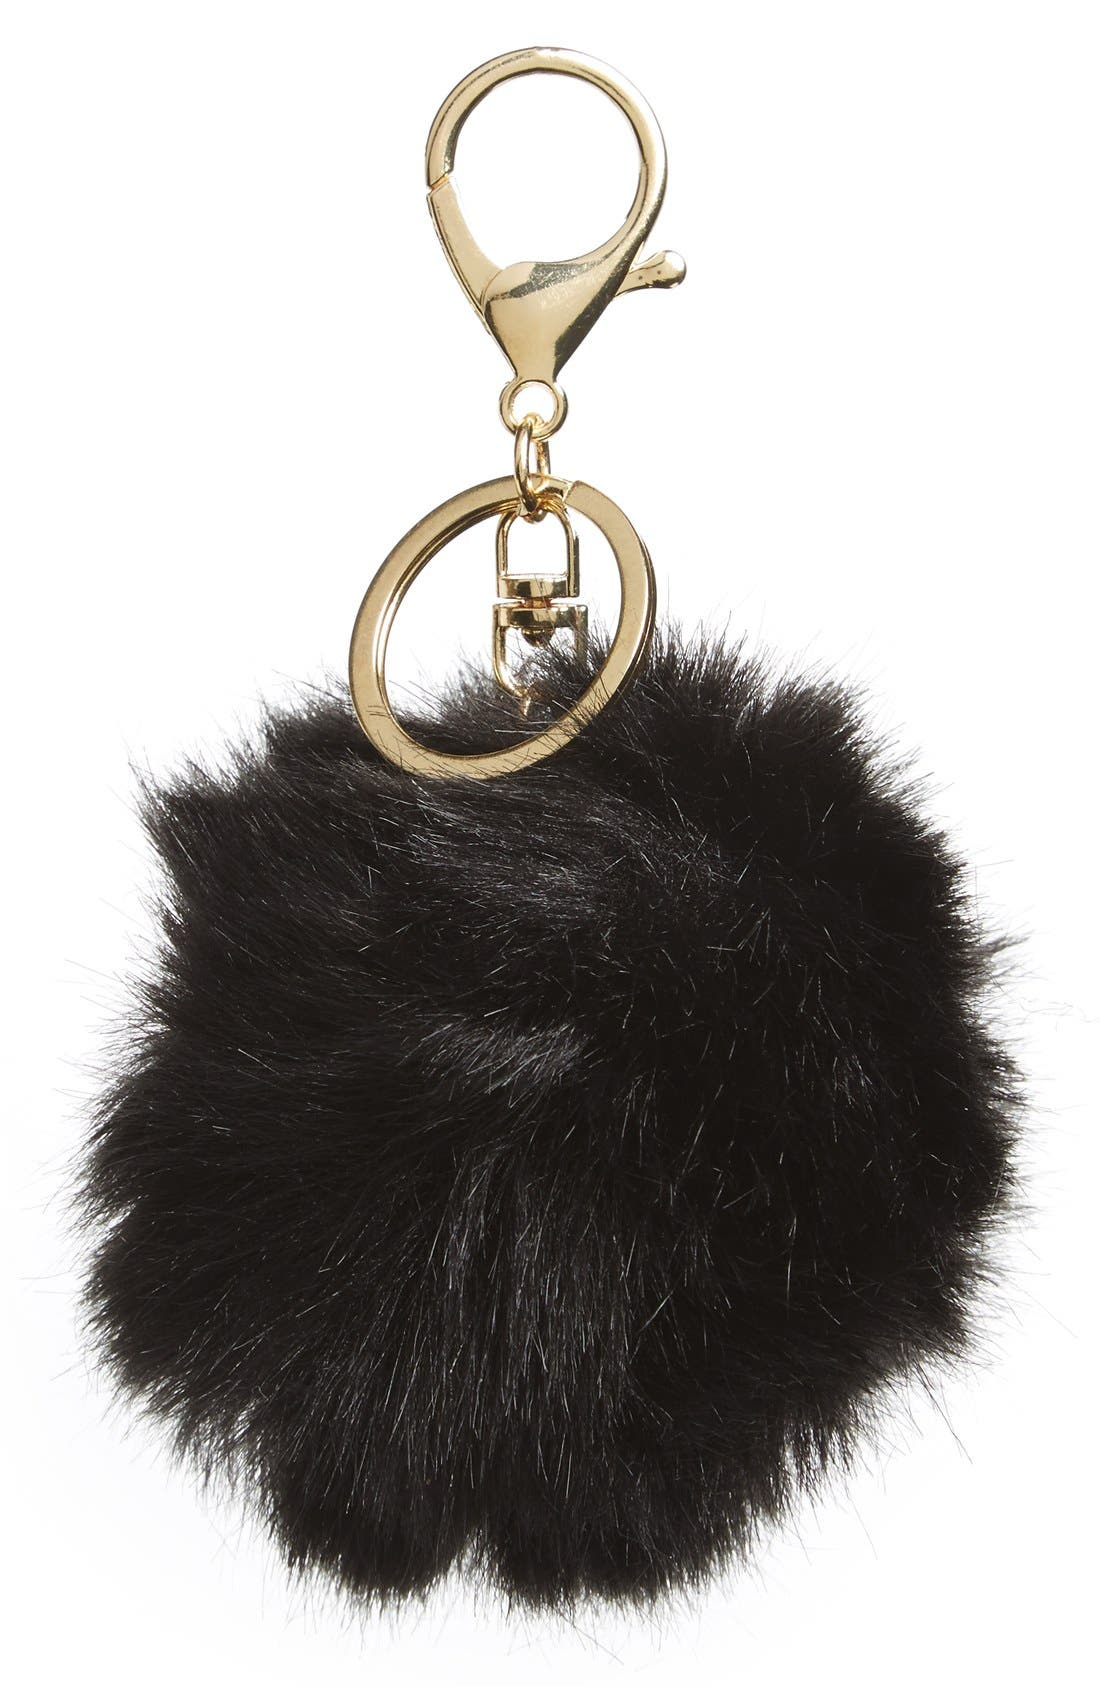 Main Image - BP. Faux Fur Pom Bag Charm